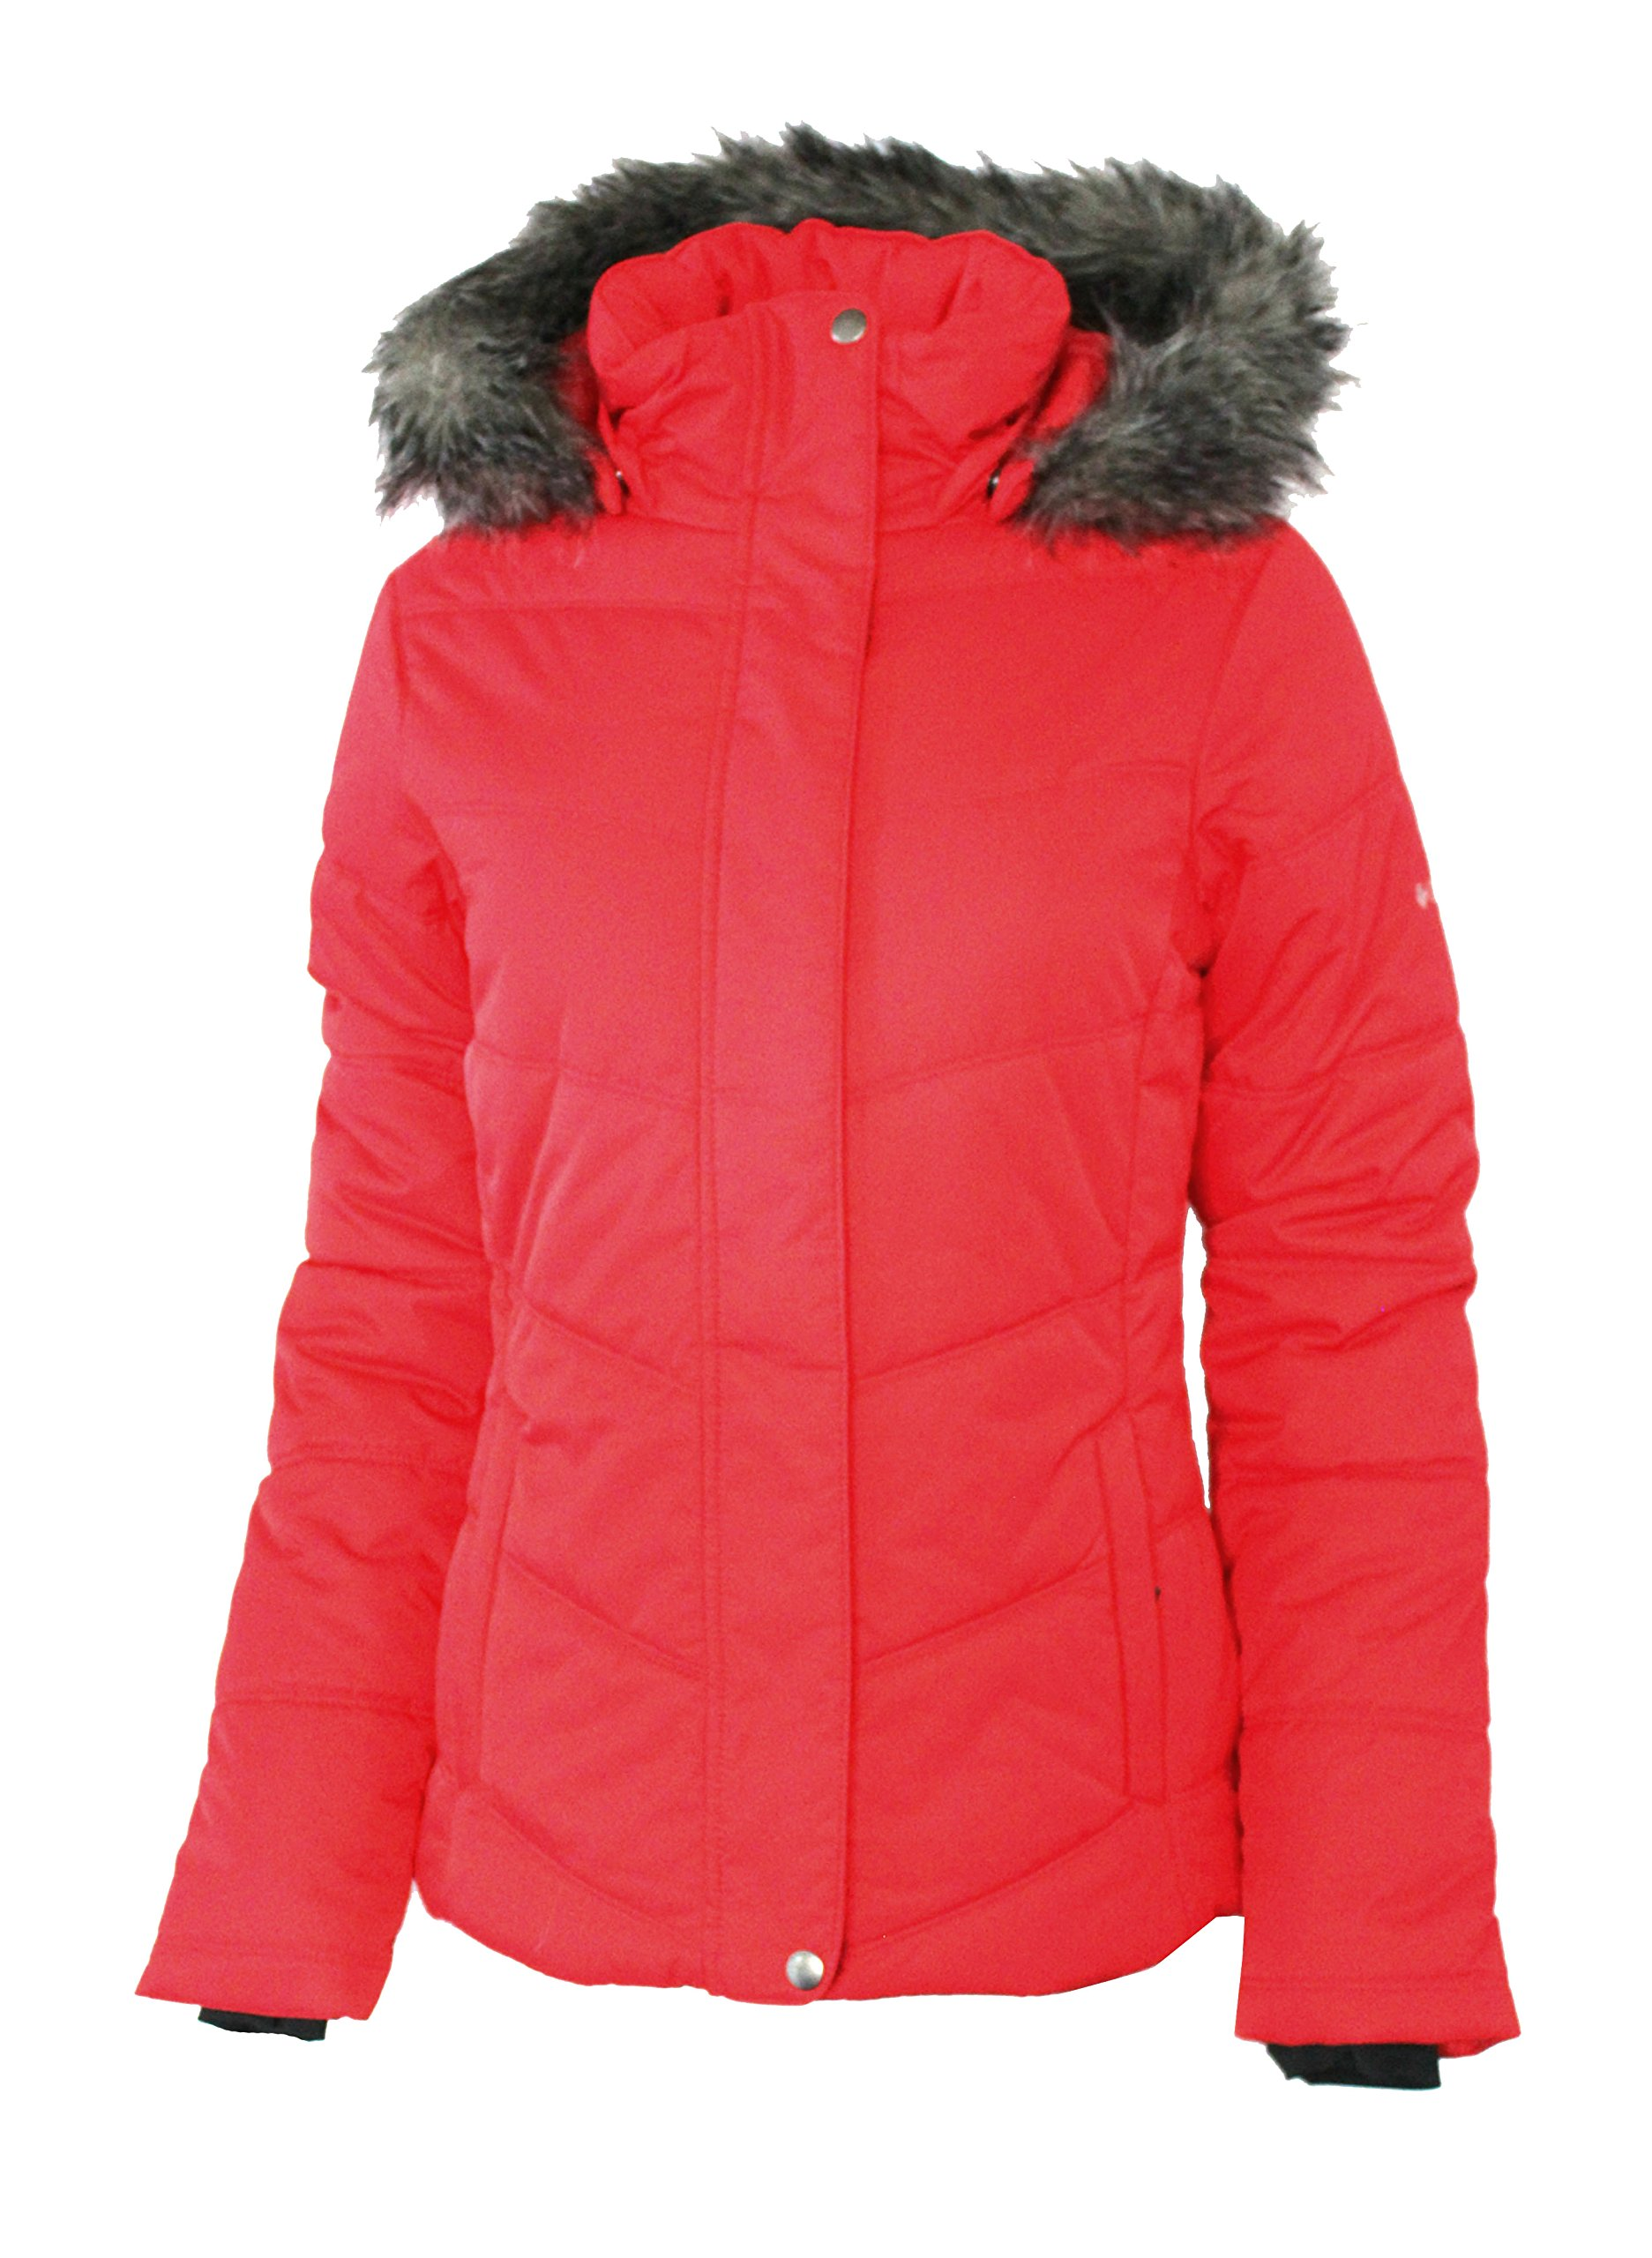 Columbia Women's Simply Snowy II Insulated Puffer Jacket Red Camellia (M) by Columbia